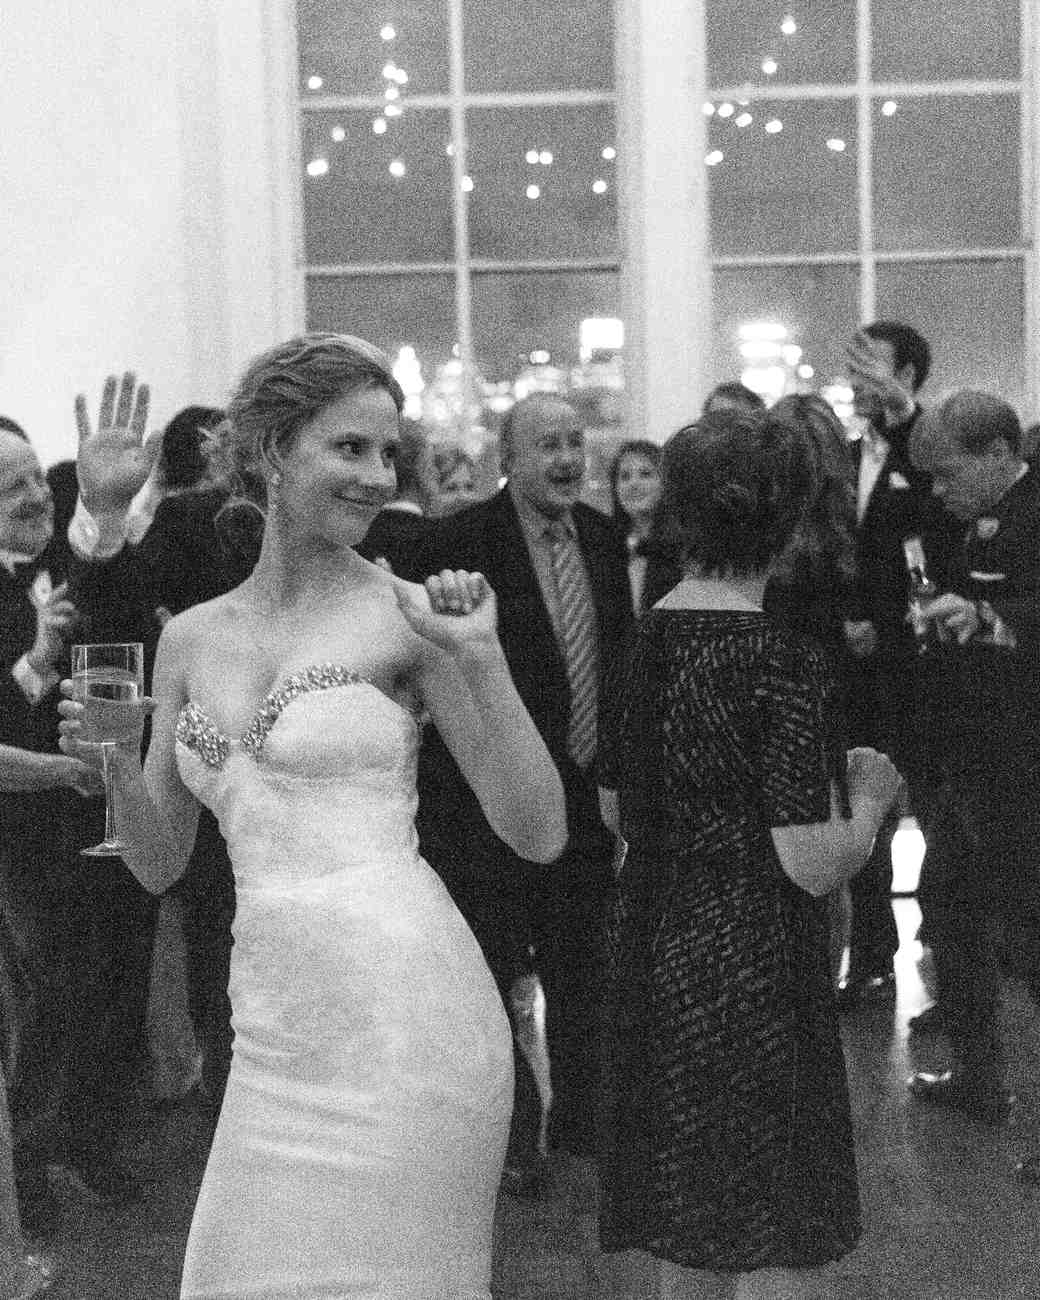 bride-dancing-bw-blake-chris-nyc-pi-5997-mwd110141.jpg